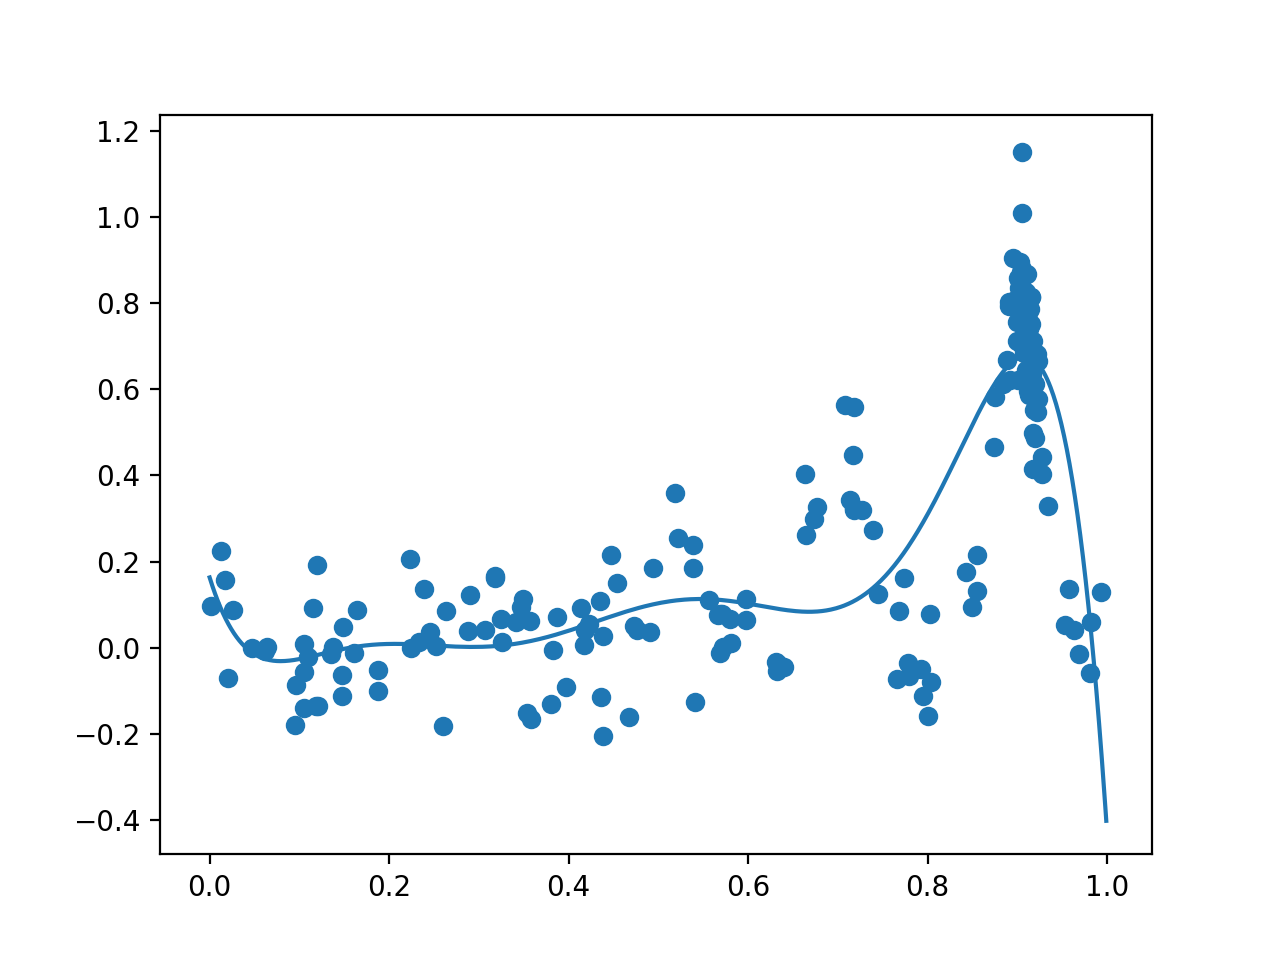 Plot of All Samples (dots) and Surrogate Function Across the Domain (line) after Bayesian Optimization.